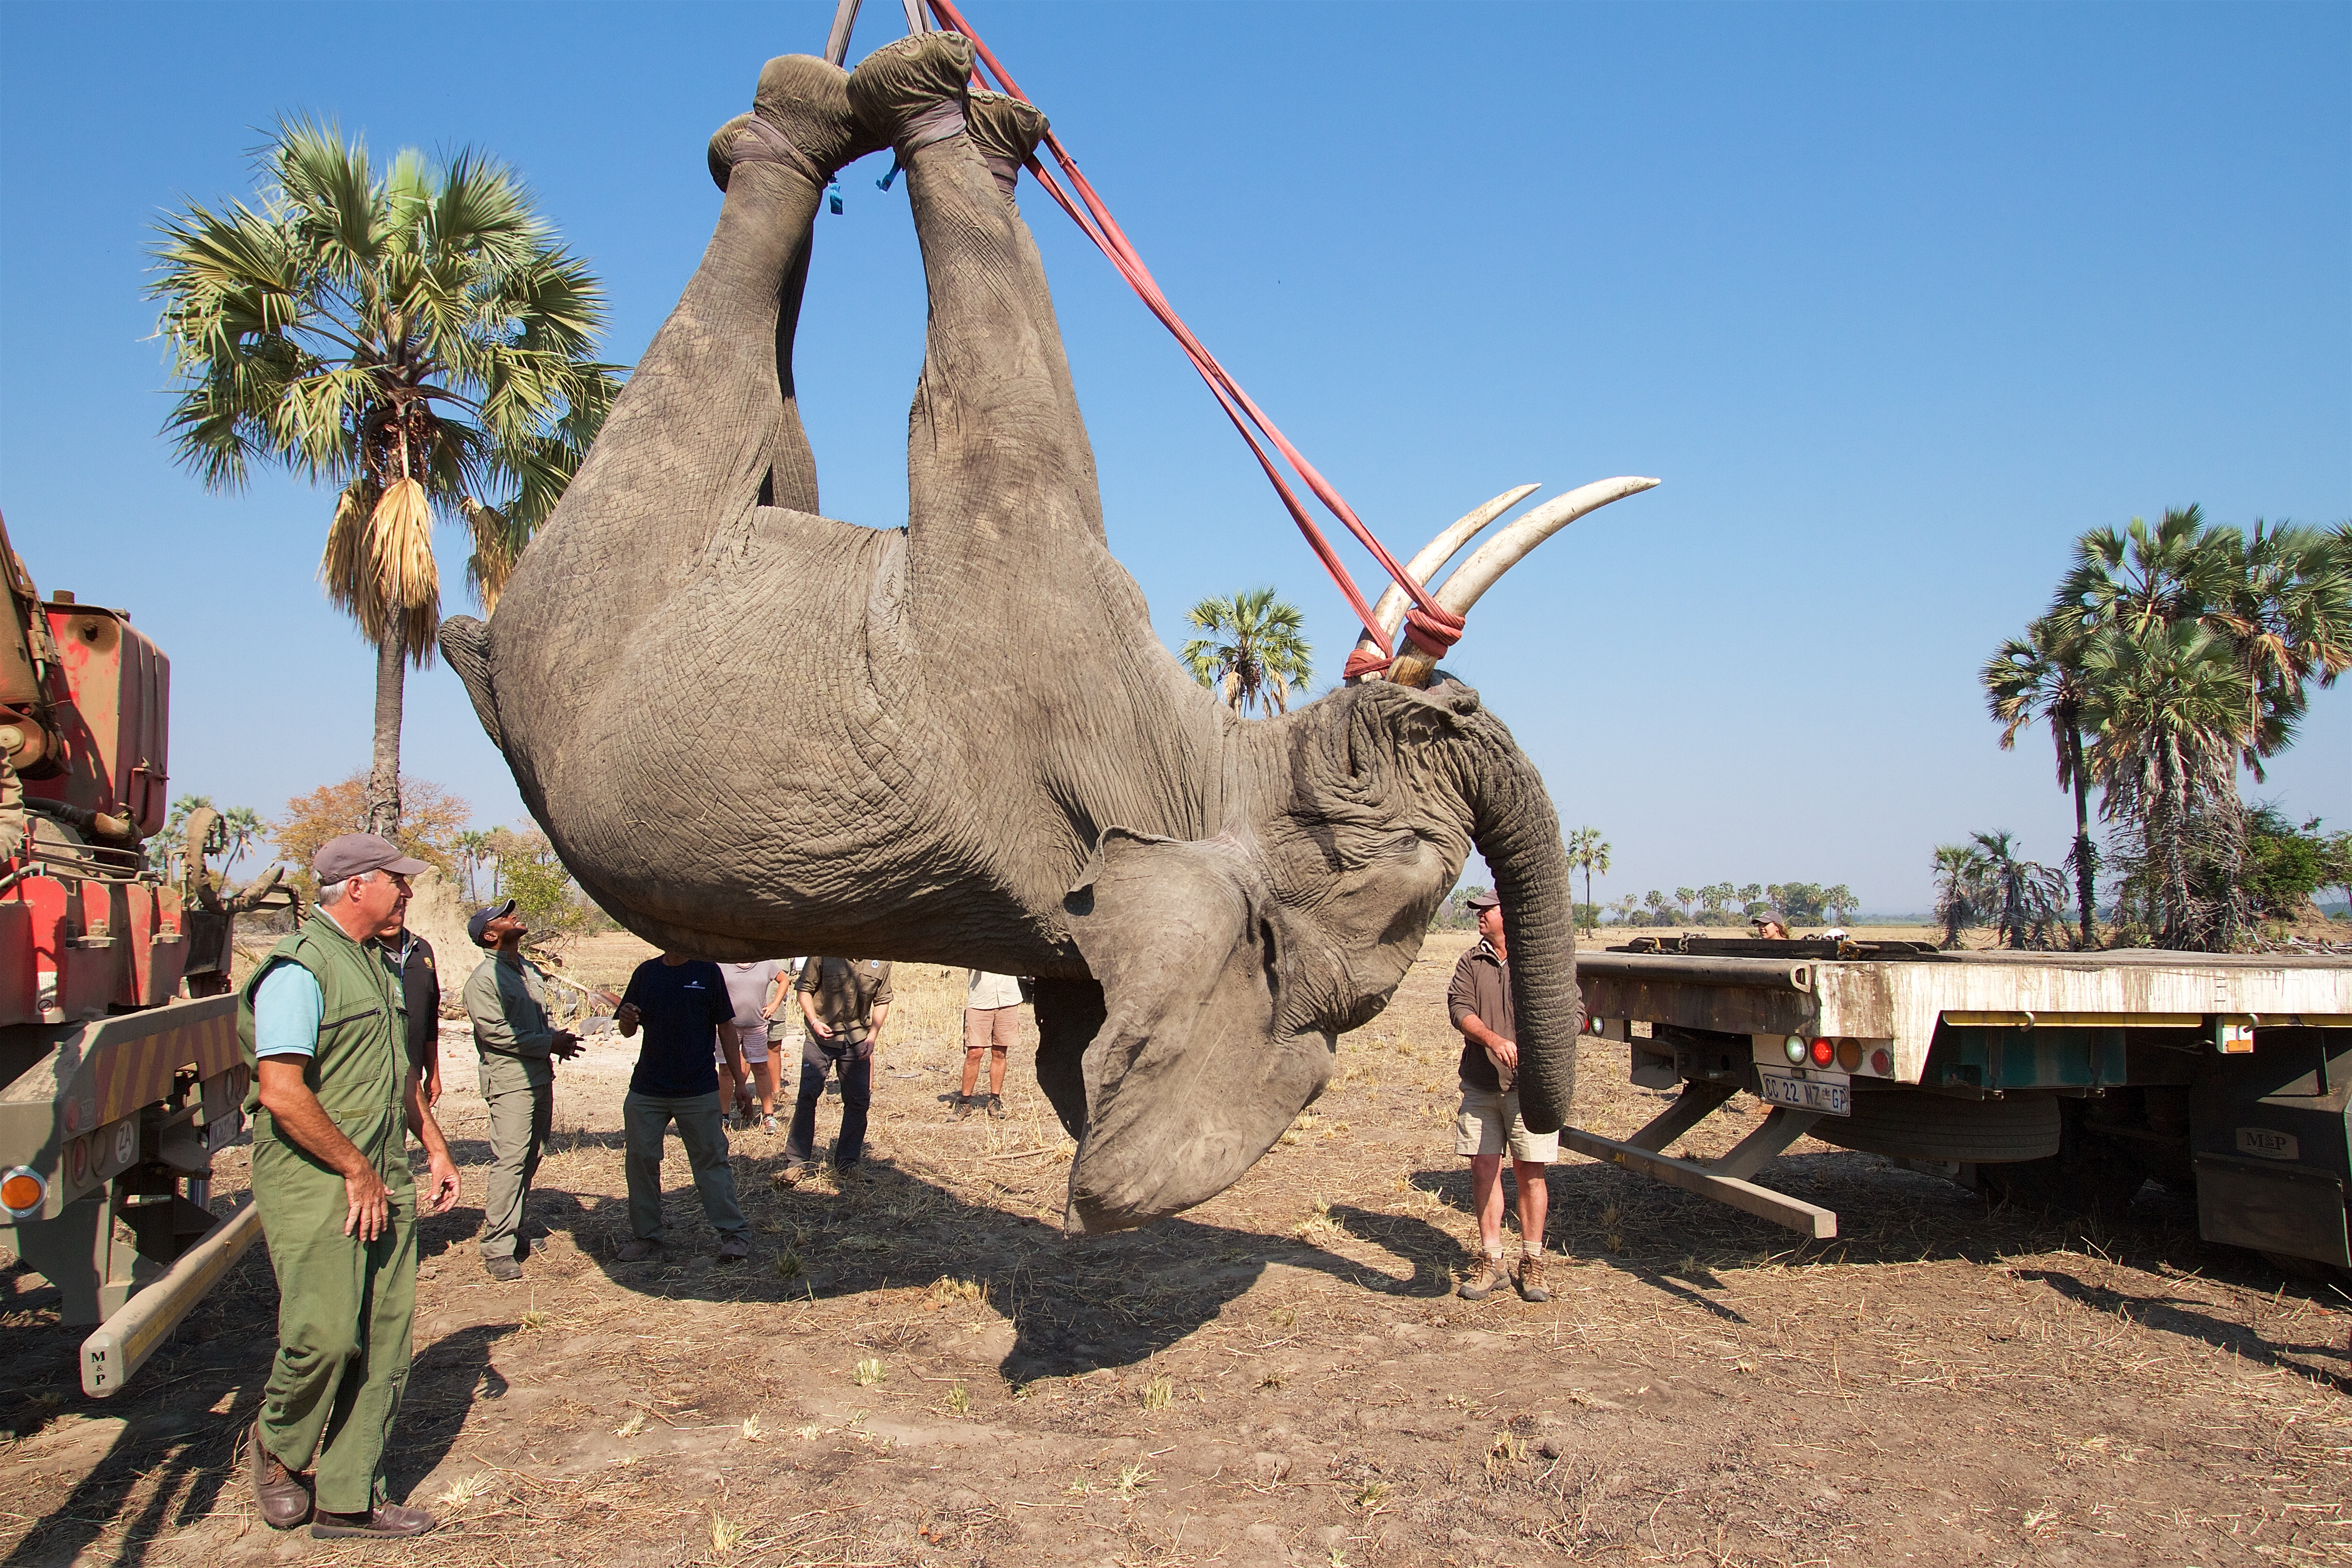 An elephant is lifted by crane to be weighed and transported to the wake up crate. Photo by Frank Weitzer.